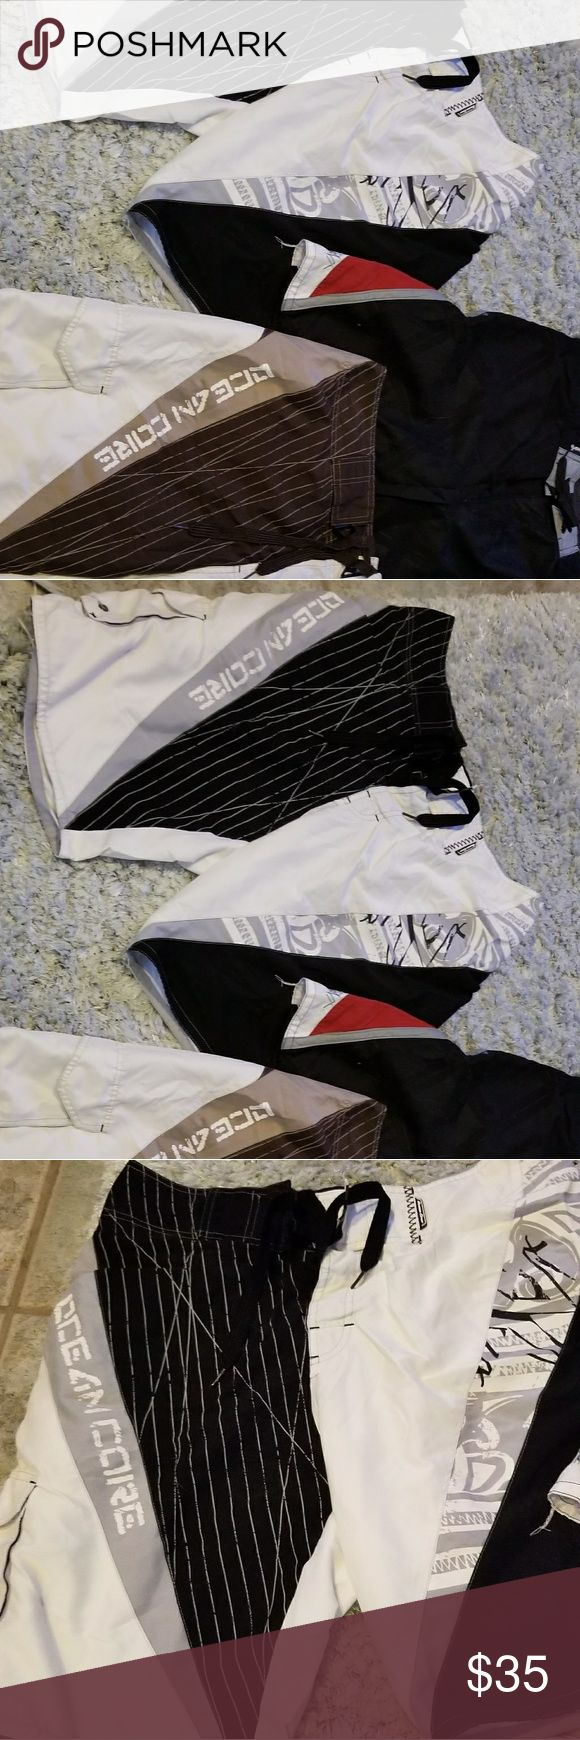 Mens surf shorts 3 pair sz 32 Mens surf shorts in sz 32. (New with tags),black,red,white shorts(ocean current).Zippered pocket.(slight used) Ocean core black,whjte,gray(used) lines, pocket. Ocean core brown, white, pocket, lined.(slight used) All in great shape bought at local surf shop ocean currant Shorts